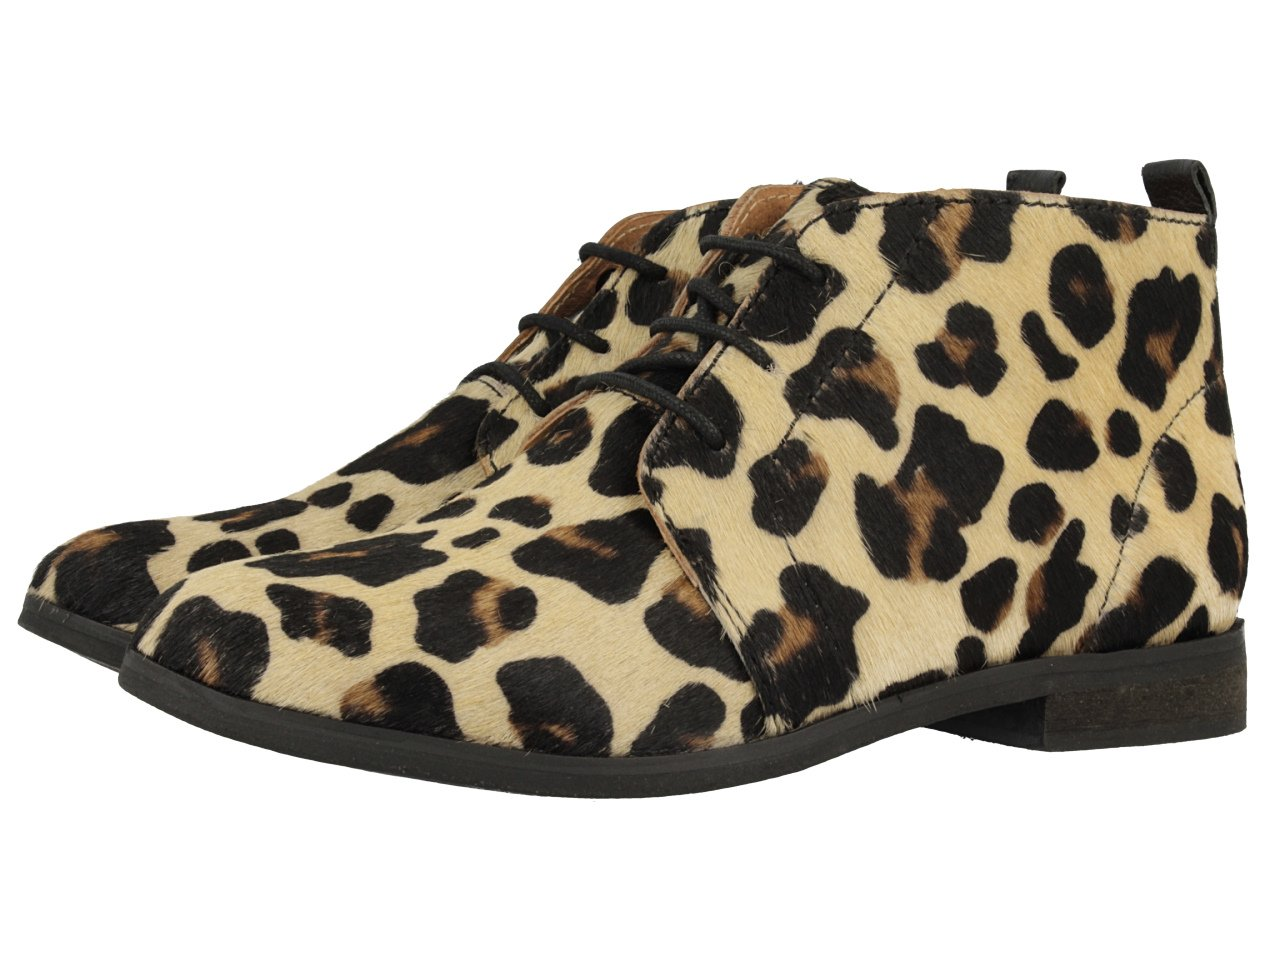 Gioseppo Brogues Luisiana, Brogues 15831 Femme Femme Multicolore (Leopardo) 3be2f1a - boatplans.space